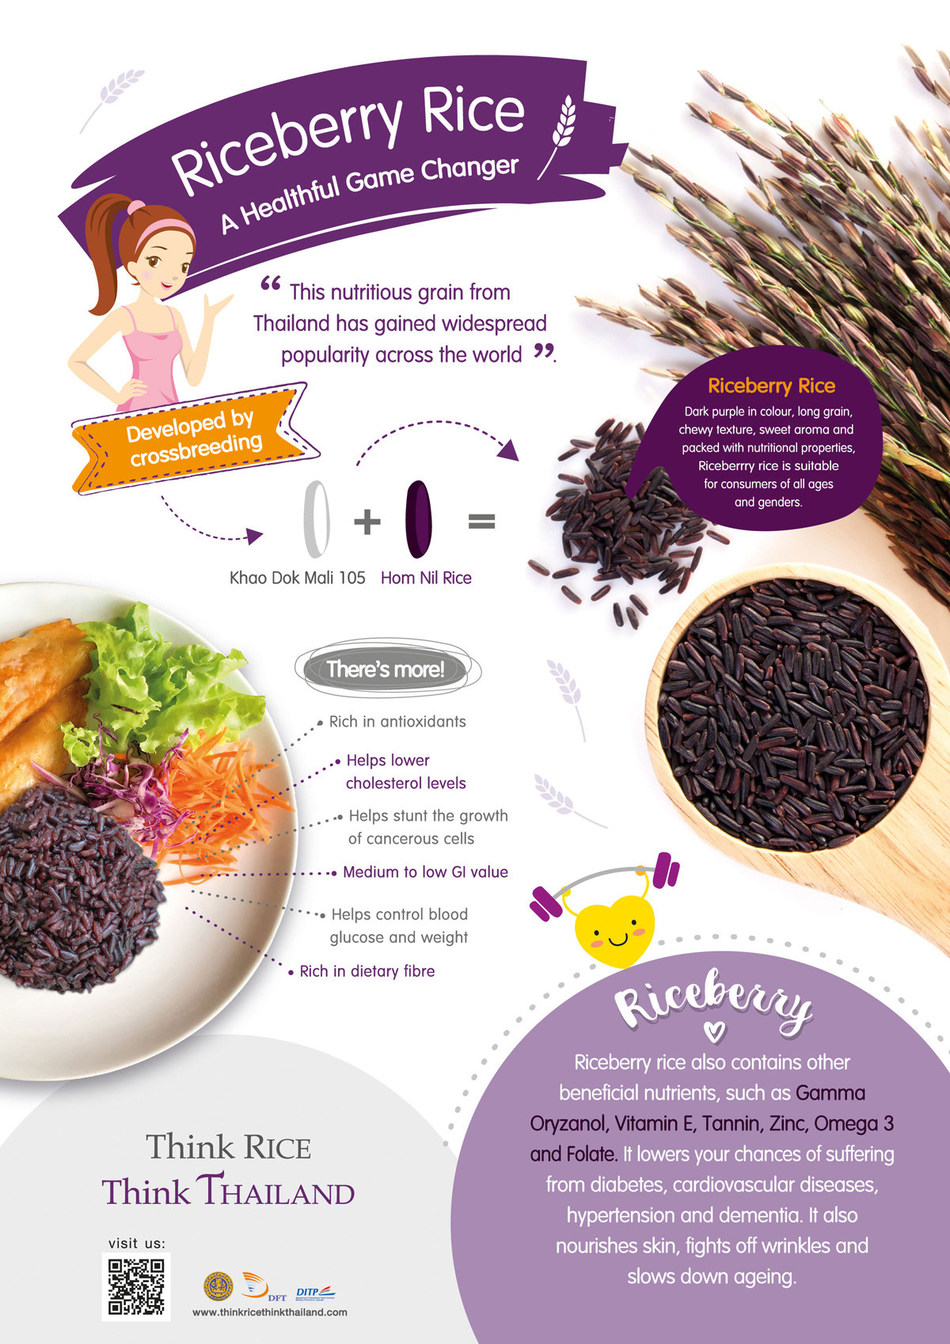 Riceberry Rice, A Healthful Game Changer from Thailand (PRNewsfoto/Department of Foreign Trade)